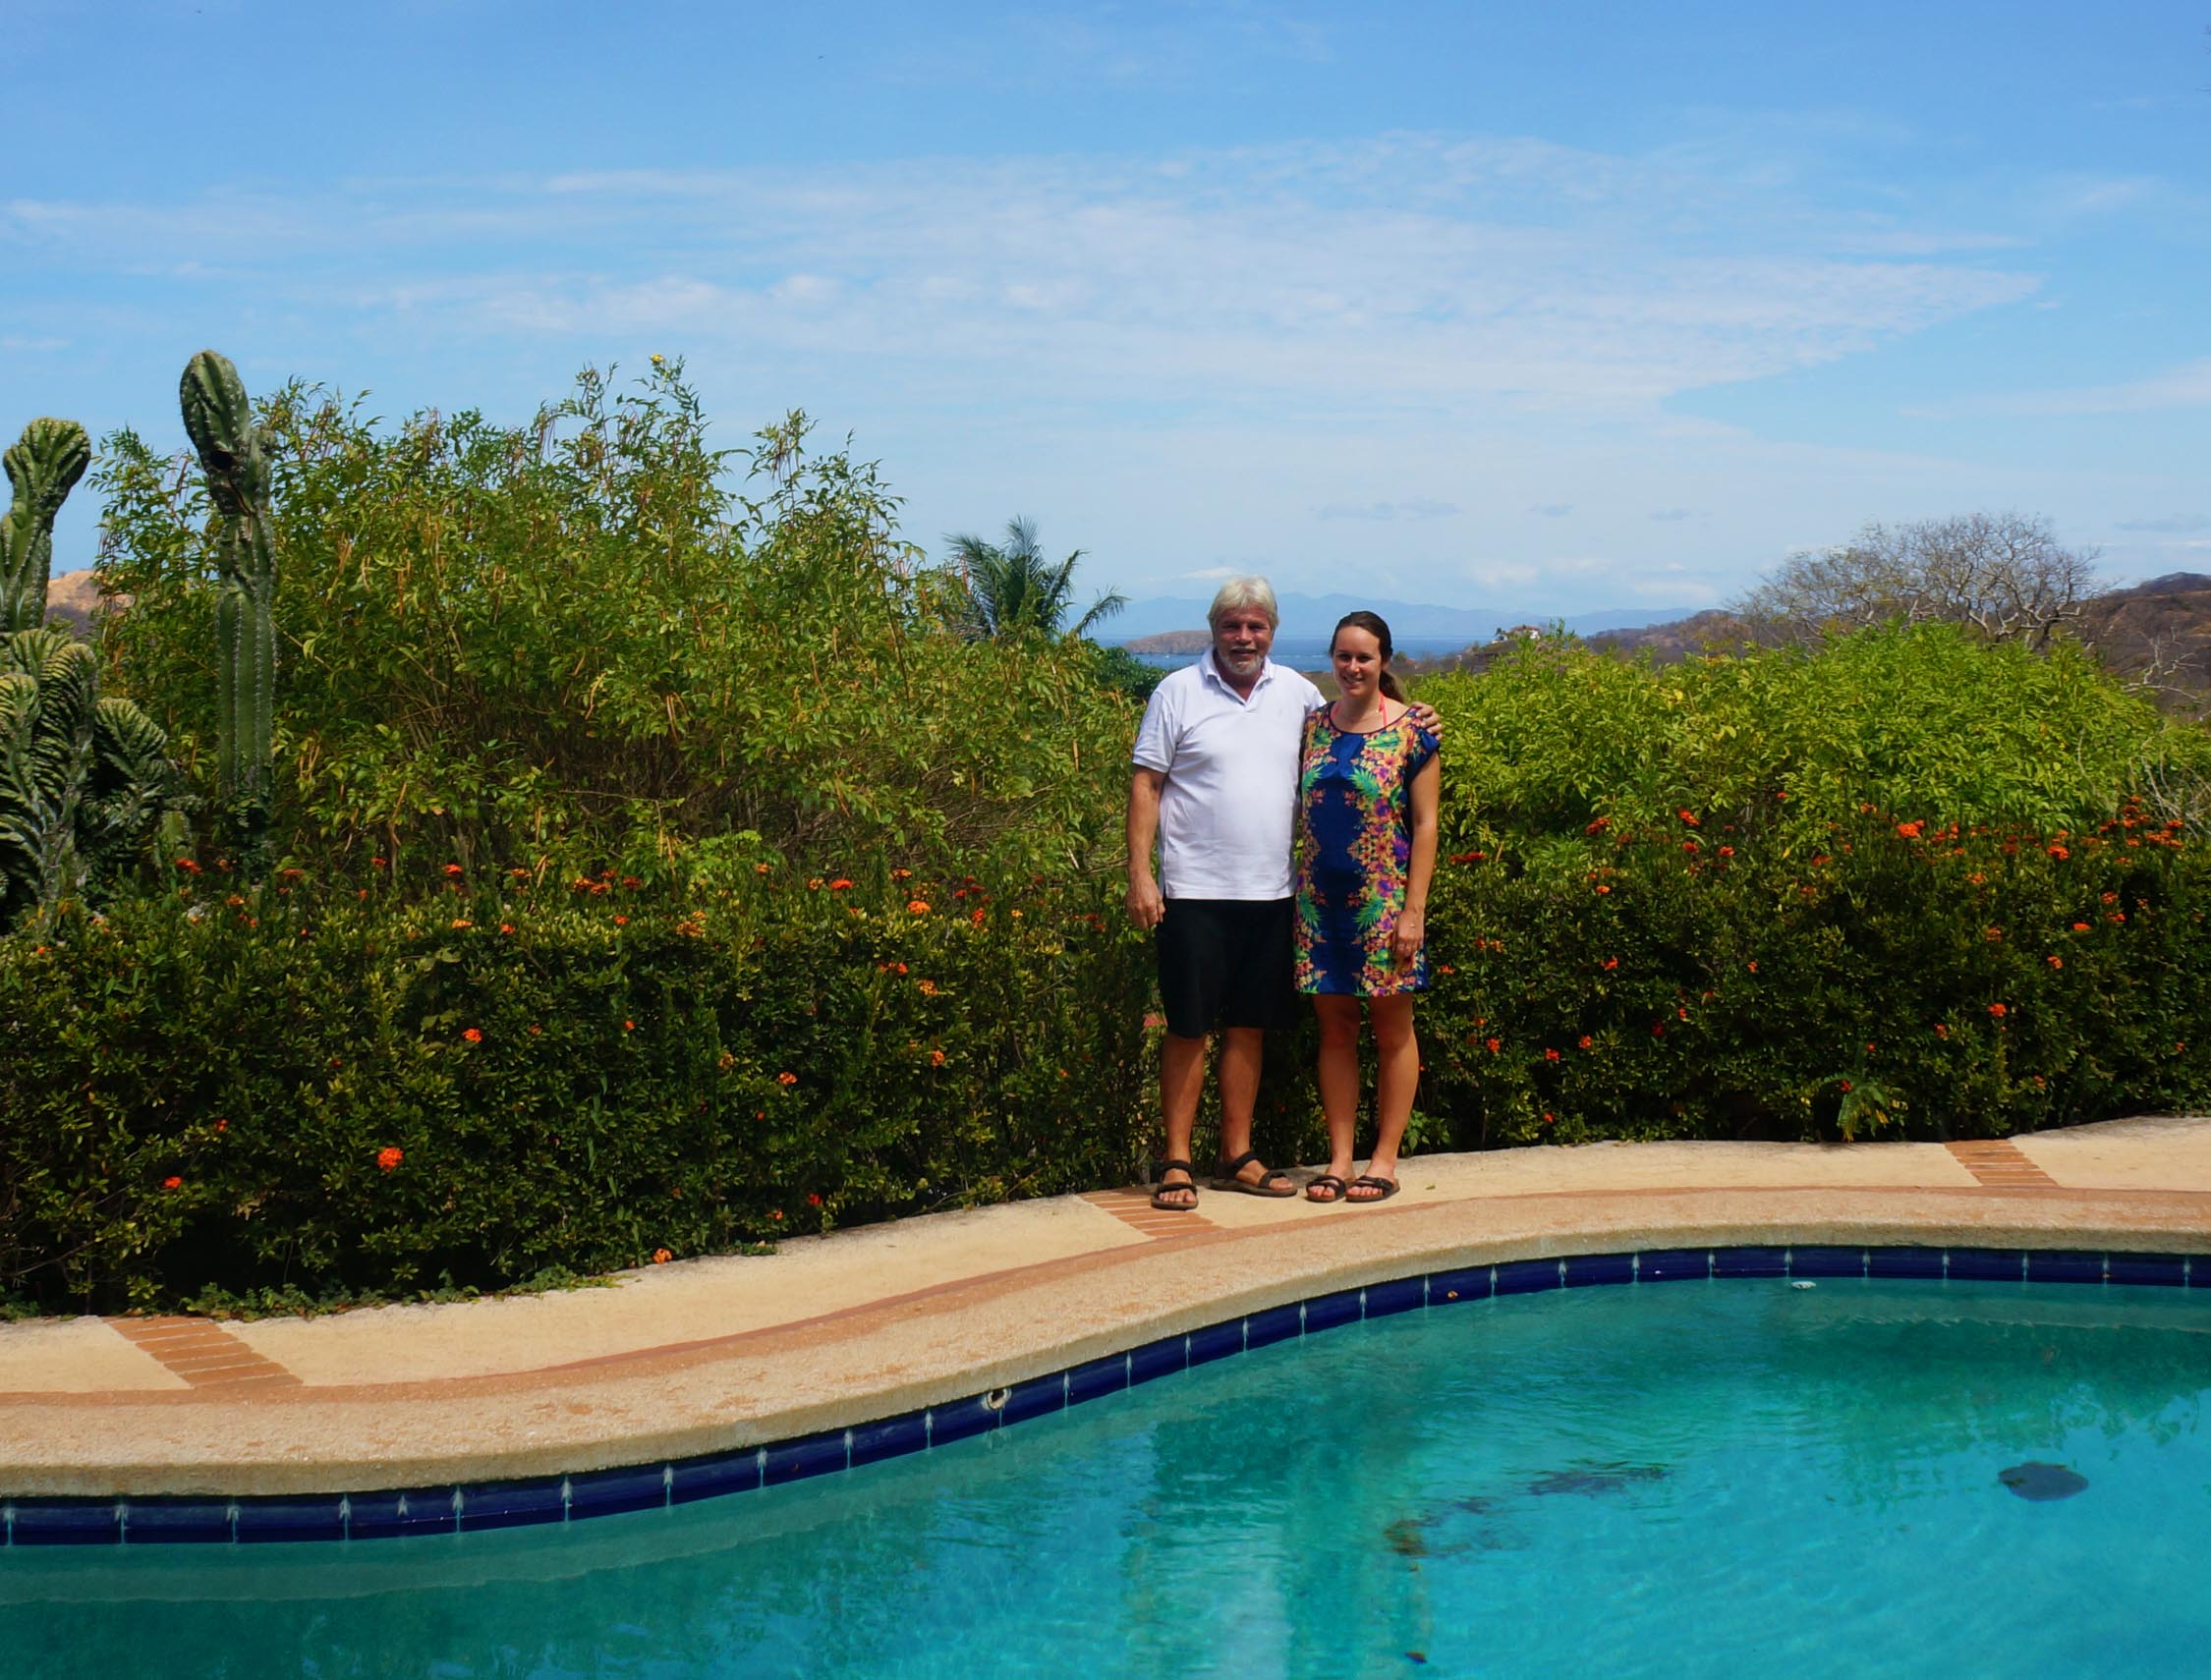 Ocean Views and Starry Skies at Rancho Armadillo Estate in Playas del Coco